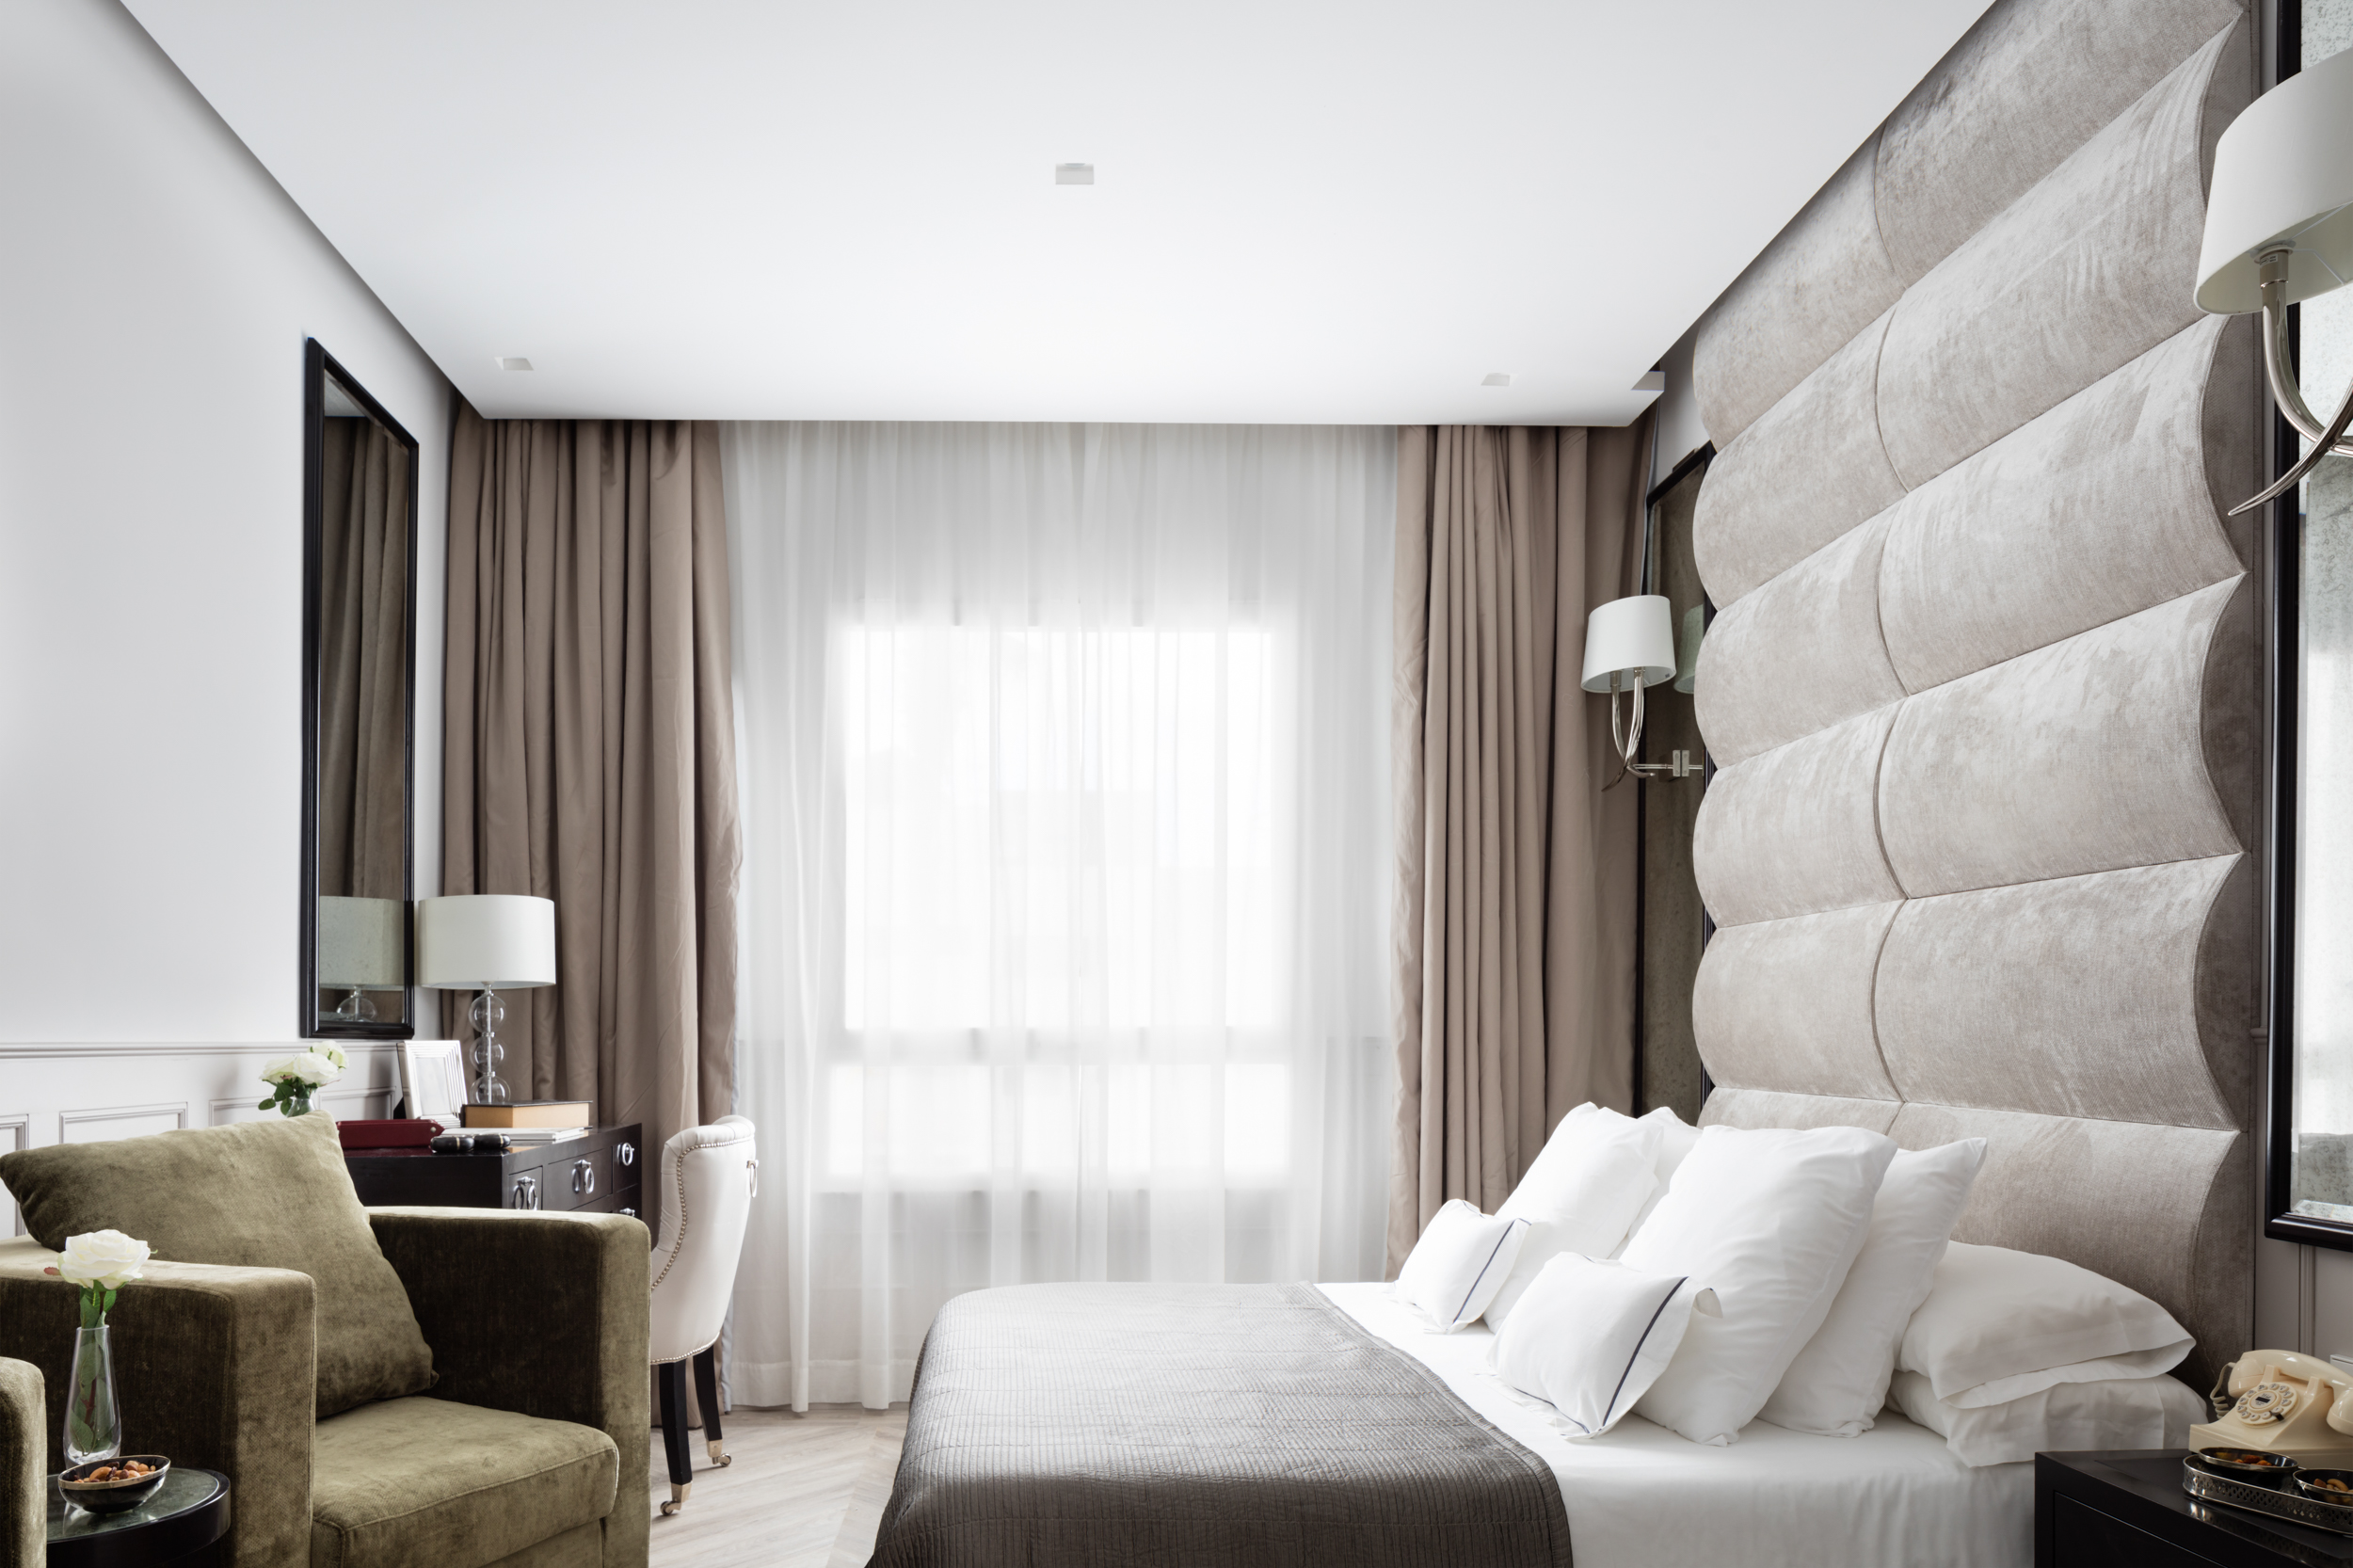 Paul Craig, Interior Photographer, Hotel Photography, Commercial Property Bedroom